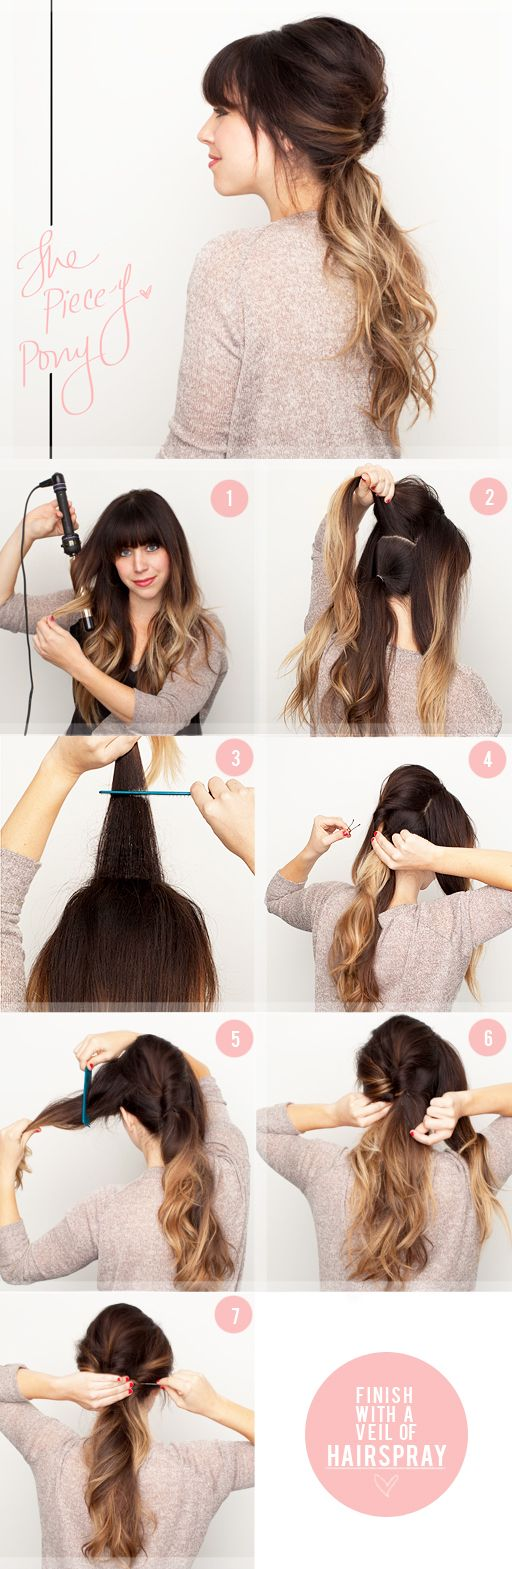 Prime 5 Diy Hairstyles Perfect For Pre Wedding Parties Short Hairstyles For Black Women Fulllsitofus